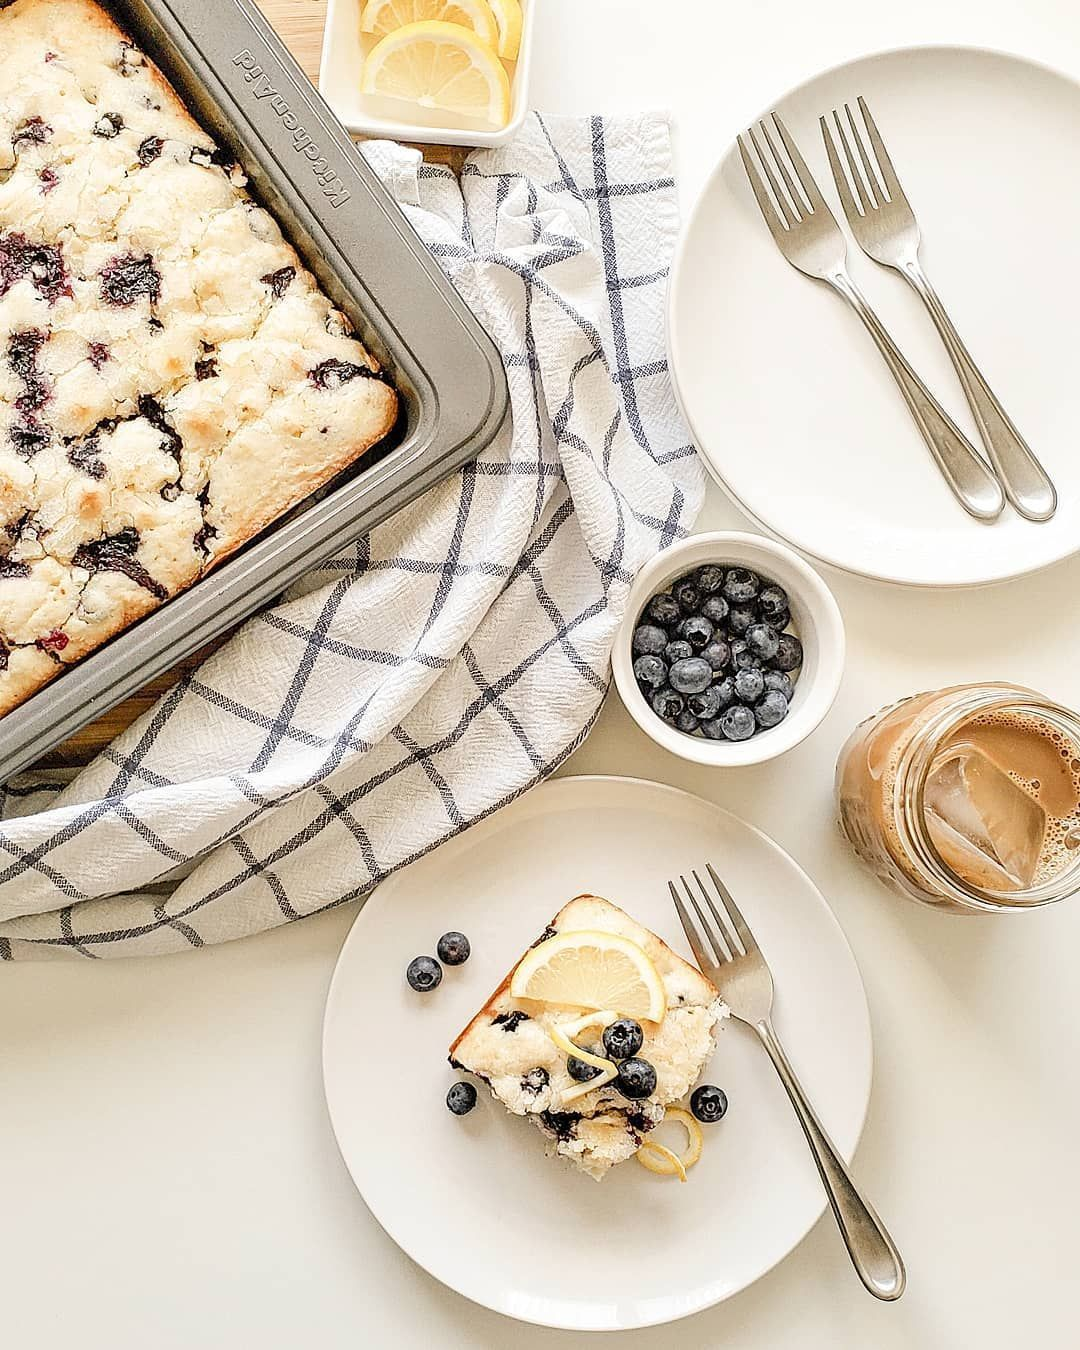 When your mom brings you blueberries - and you already bought some the day before - you make Buttermilk Blueberry Breakfast Cake. This cake… #buttermilkblueberrybreakfastcake When your mom brings you blueberries - and you already bought some the day before - you make Buttermilk Blueberry Breakfast Cake. This cake… #buttermilkblueberrybreakfastcake When your mom brings you blueberries - and you already bought some the day before - you make Buttermilk Blueberry Breakfast Cake. This cake… #bu #buttermilkblueberrybreakfastcake